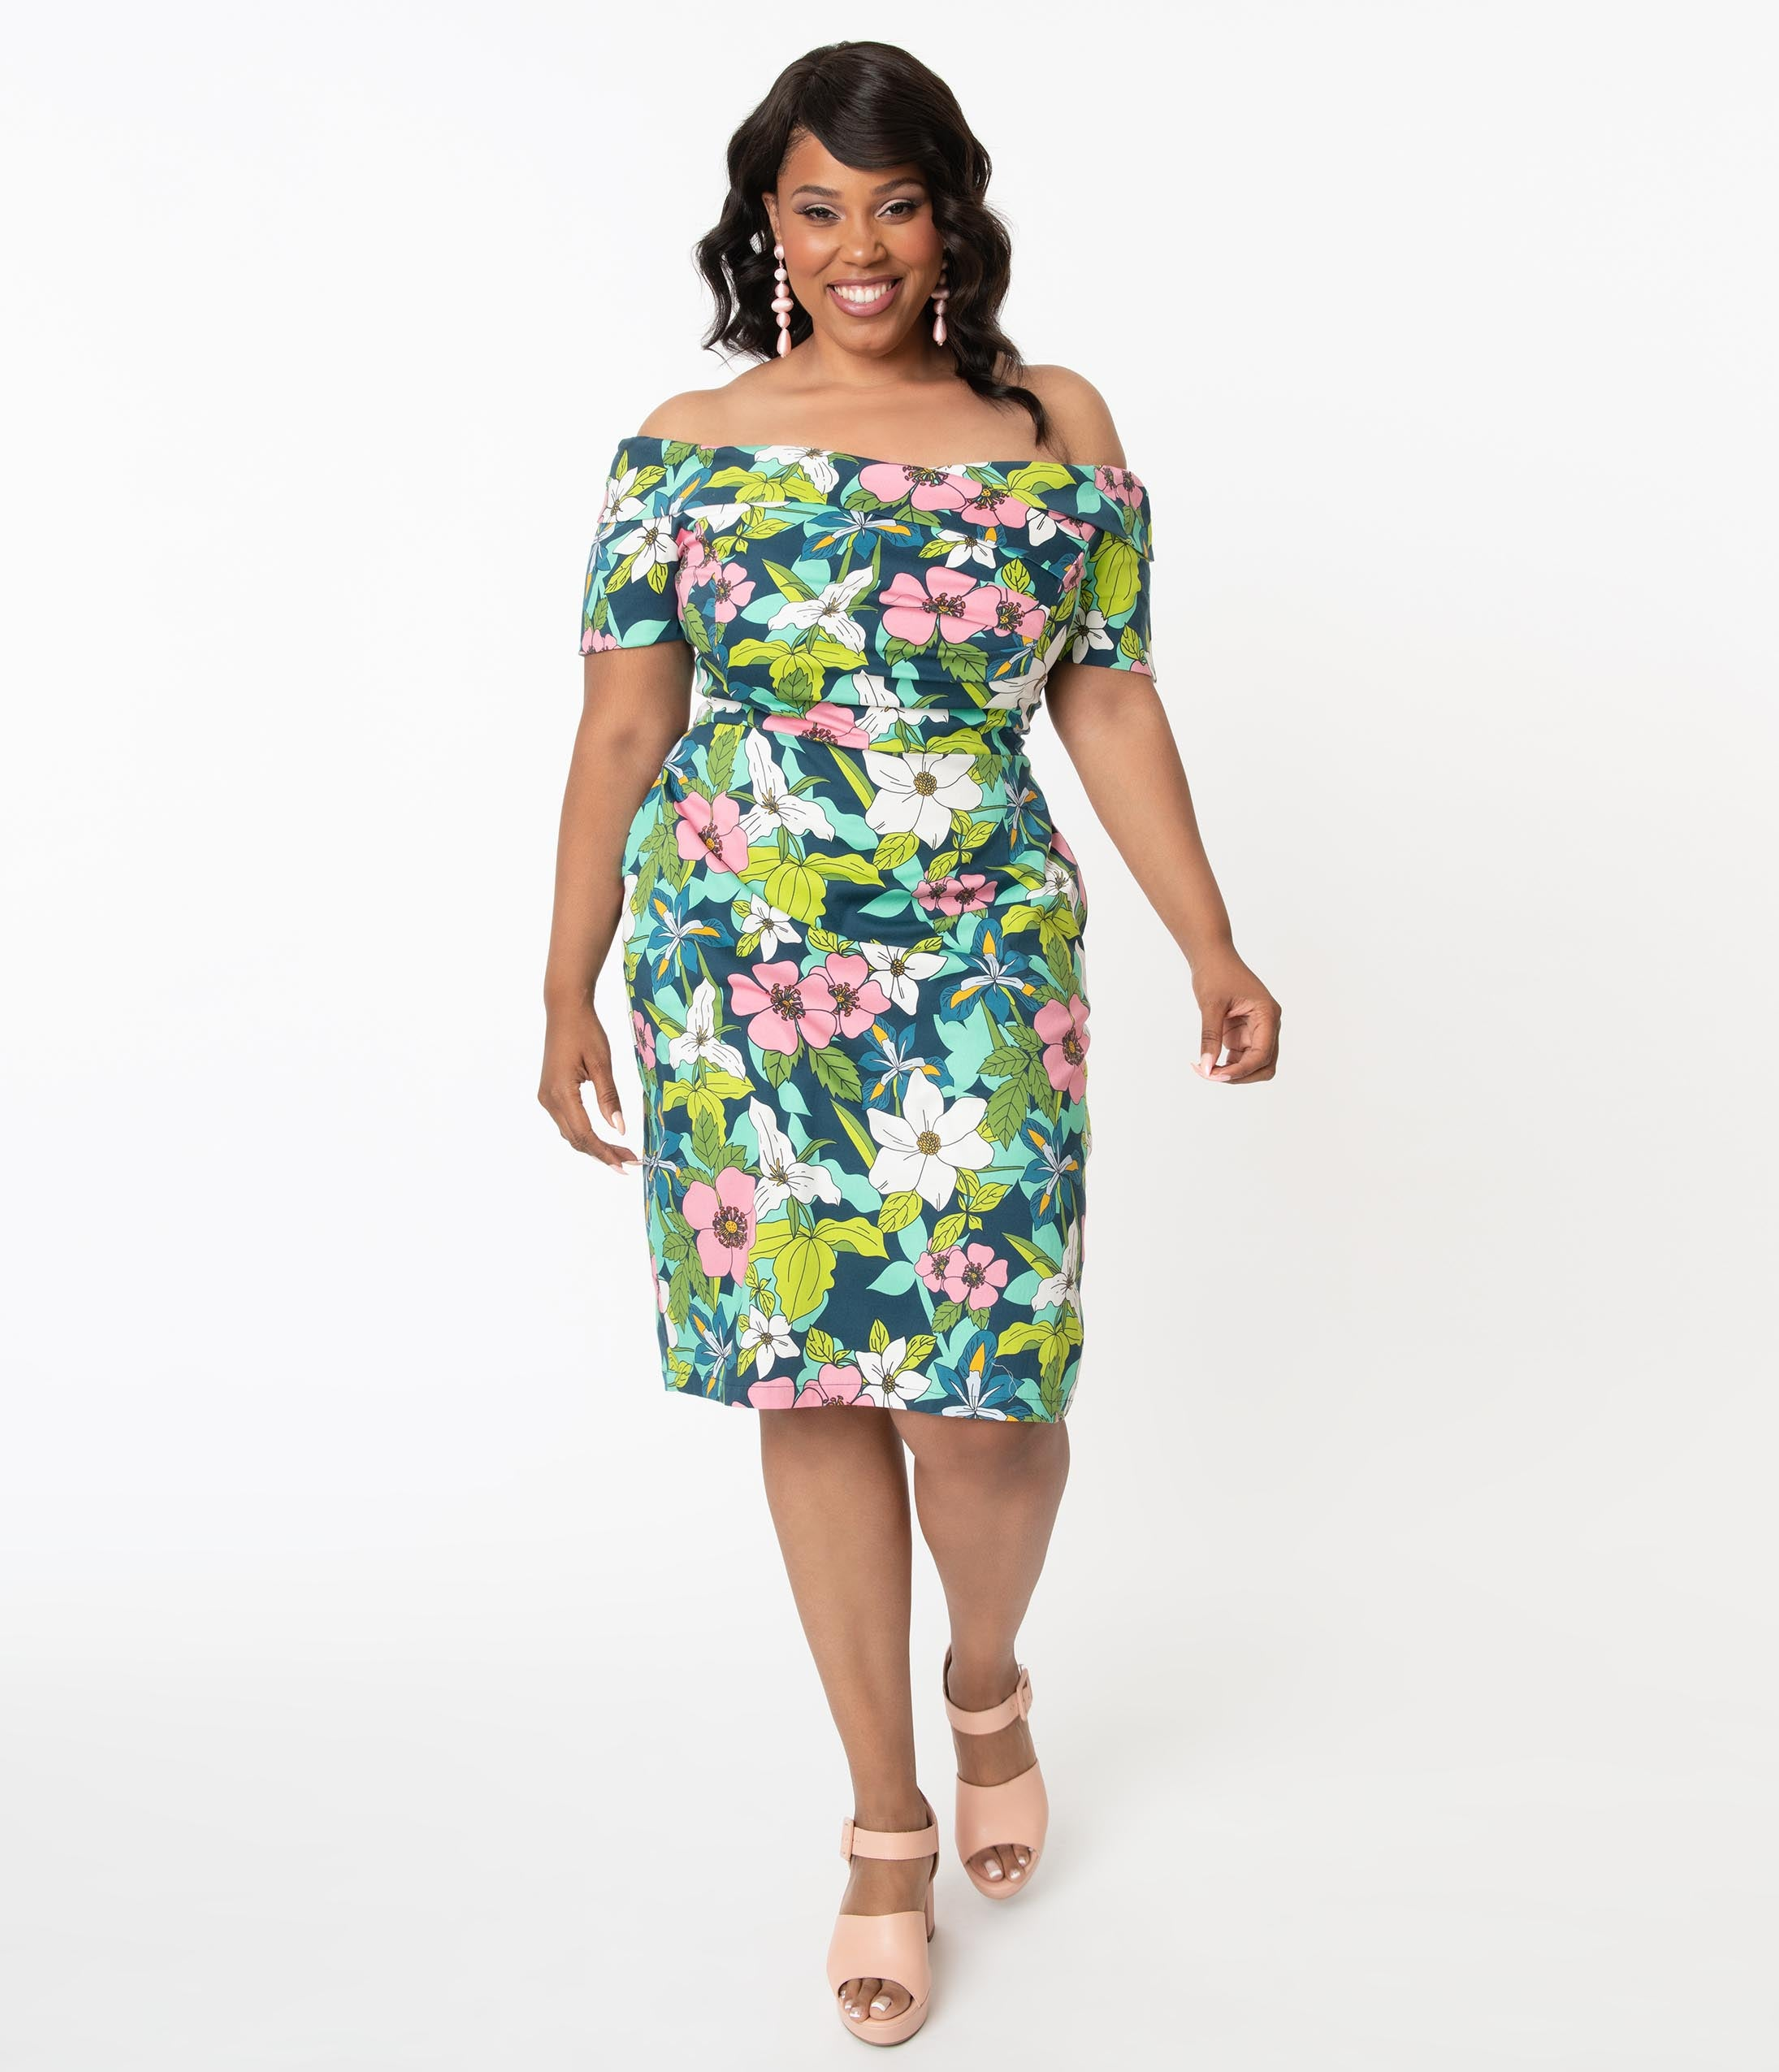 Retro Tiki Dress – Tropical, Hawaiian Dresses Plus Size Retro Blue  Pink Provincial Flowers Tyra Pencil Dress $100.00 AT vintagedancer.com